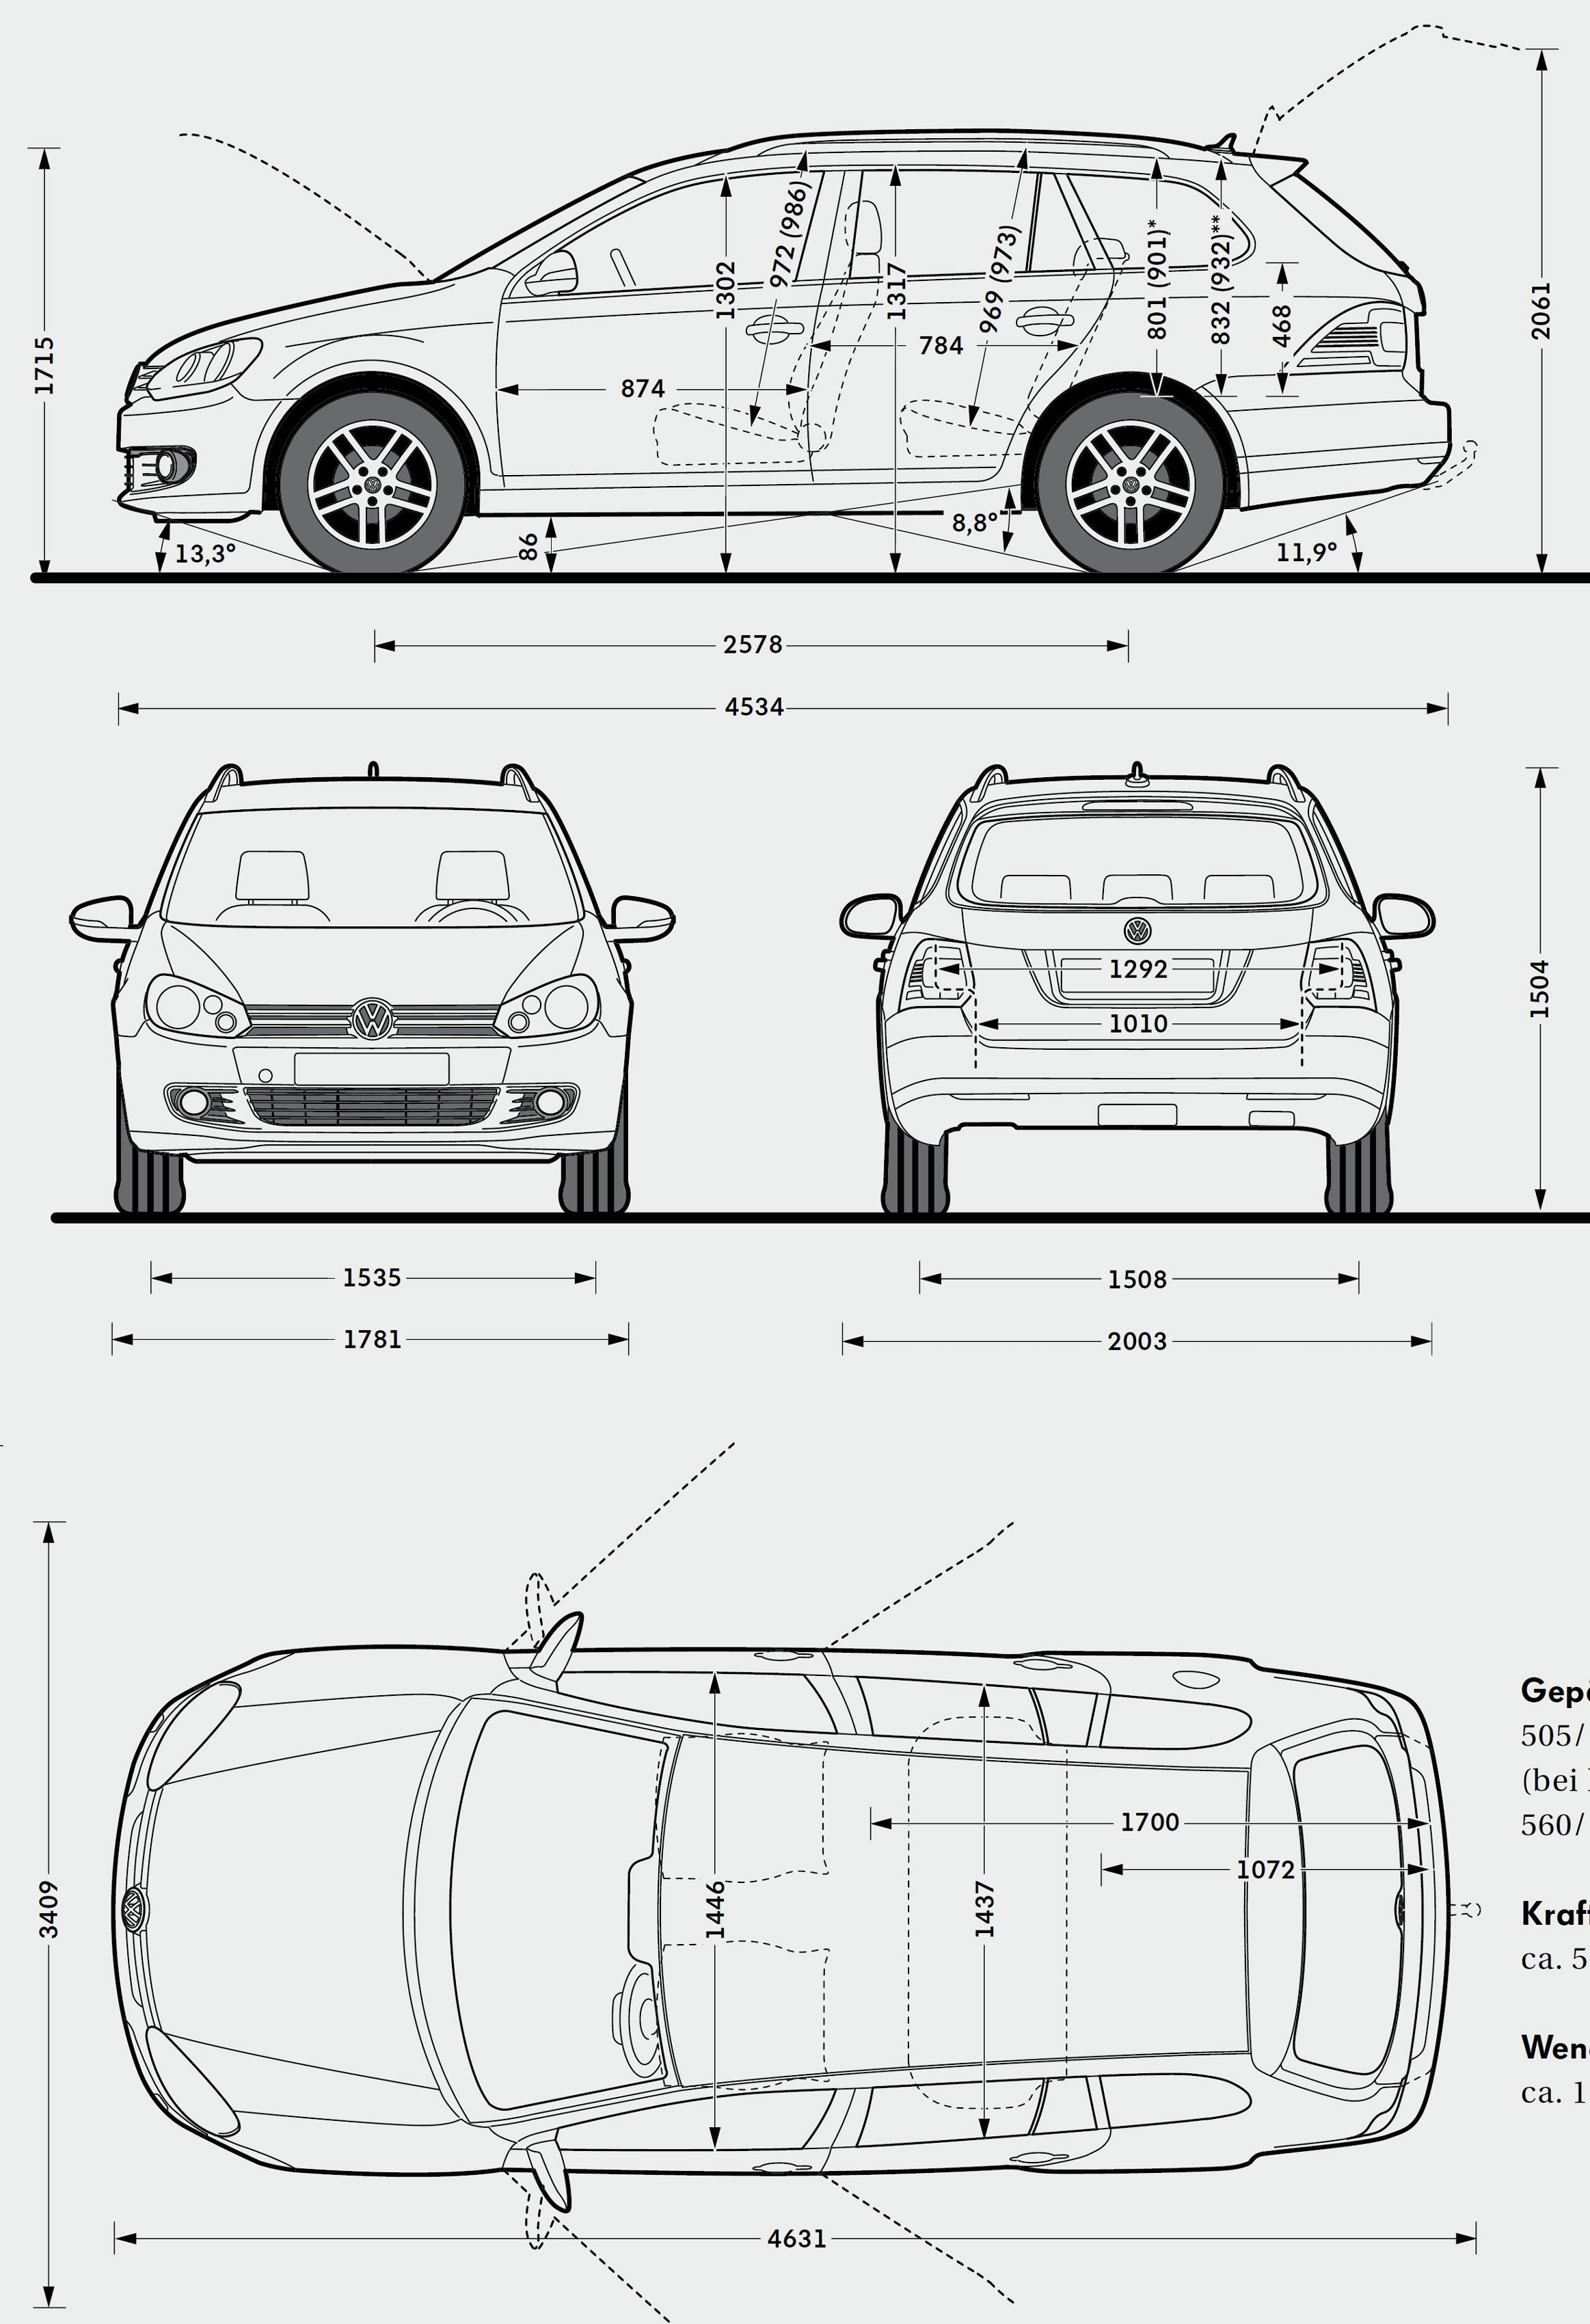 volkswagen golf variant 28200929 model sheet blue print pinterest volkswagen golf. Black Bedroom Furniture Sets. Home Design Ideas